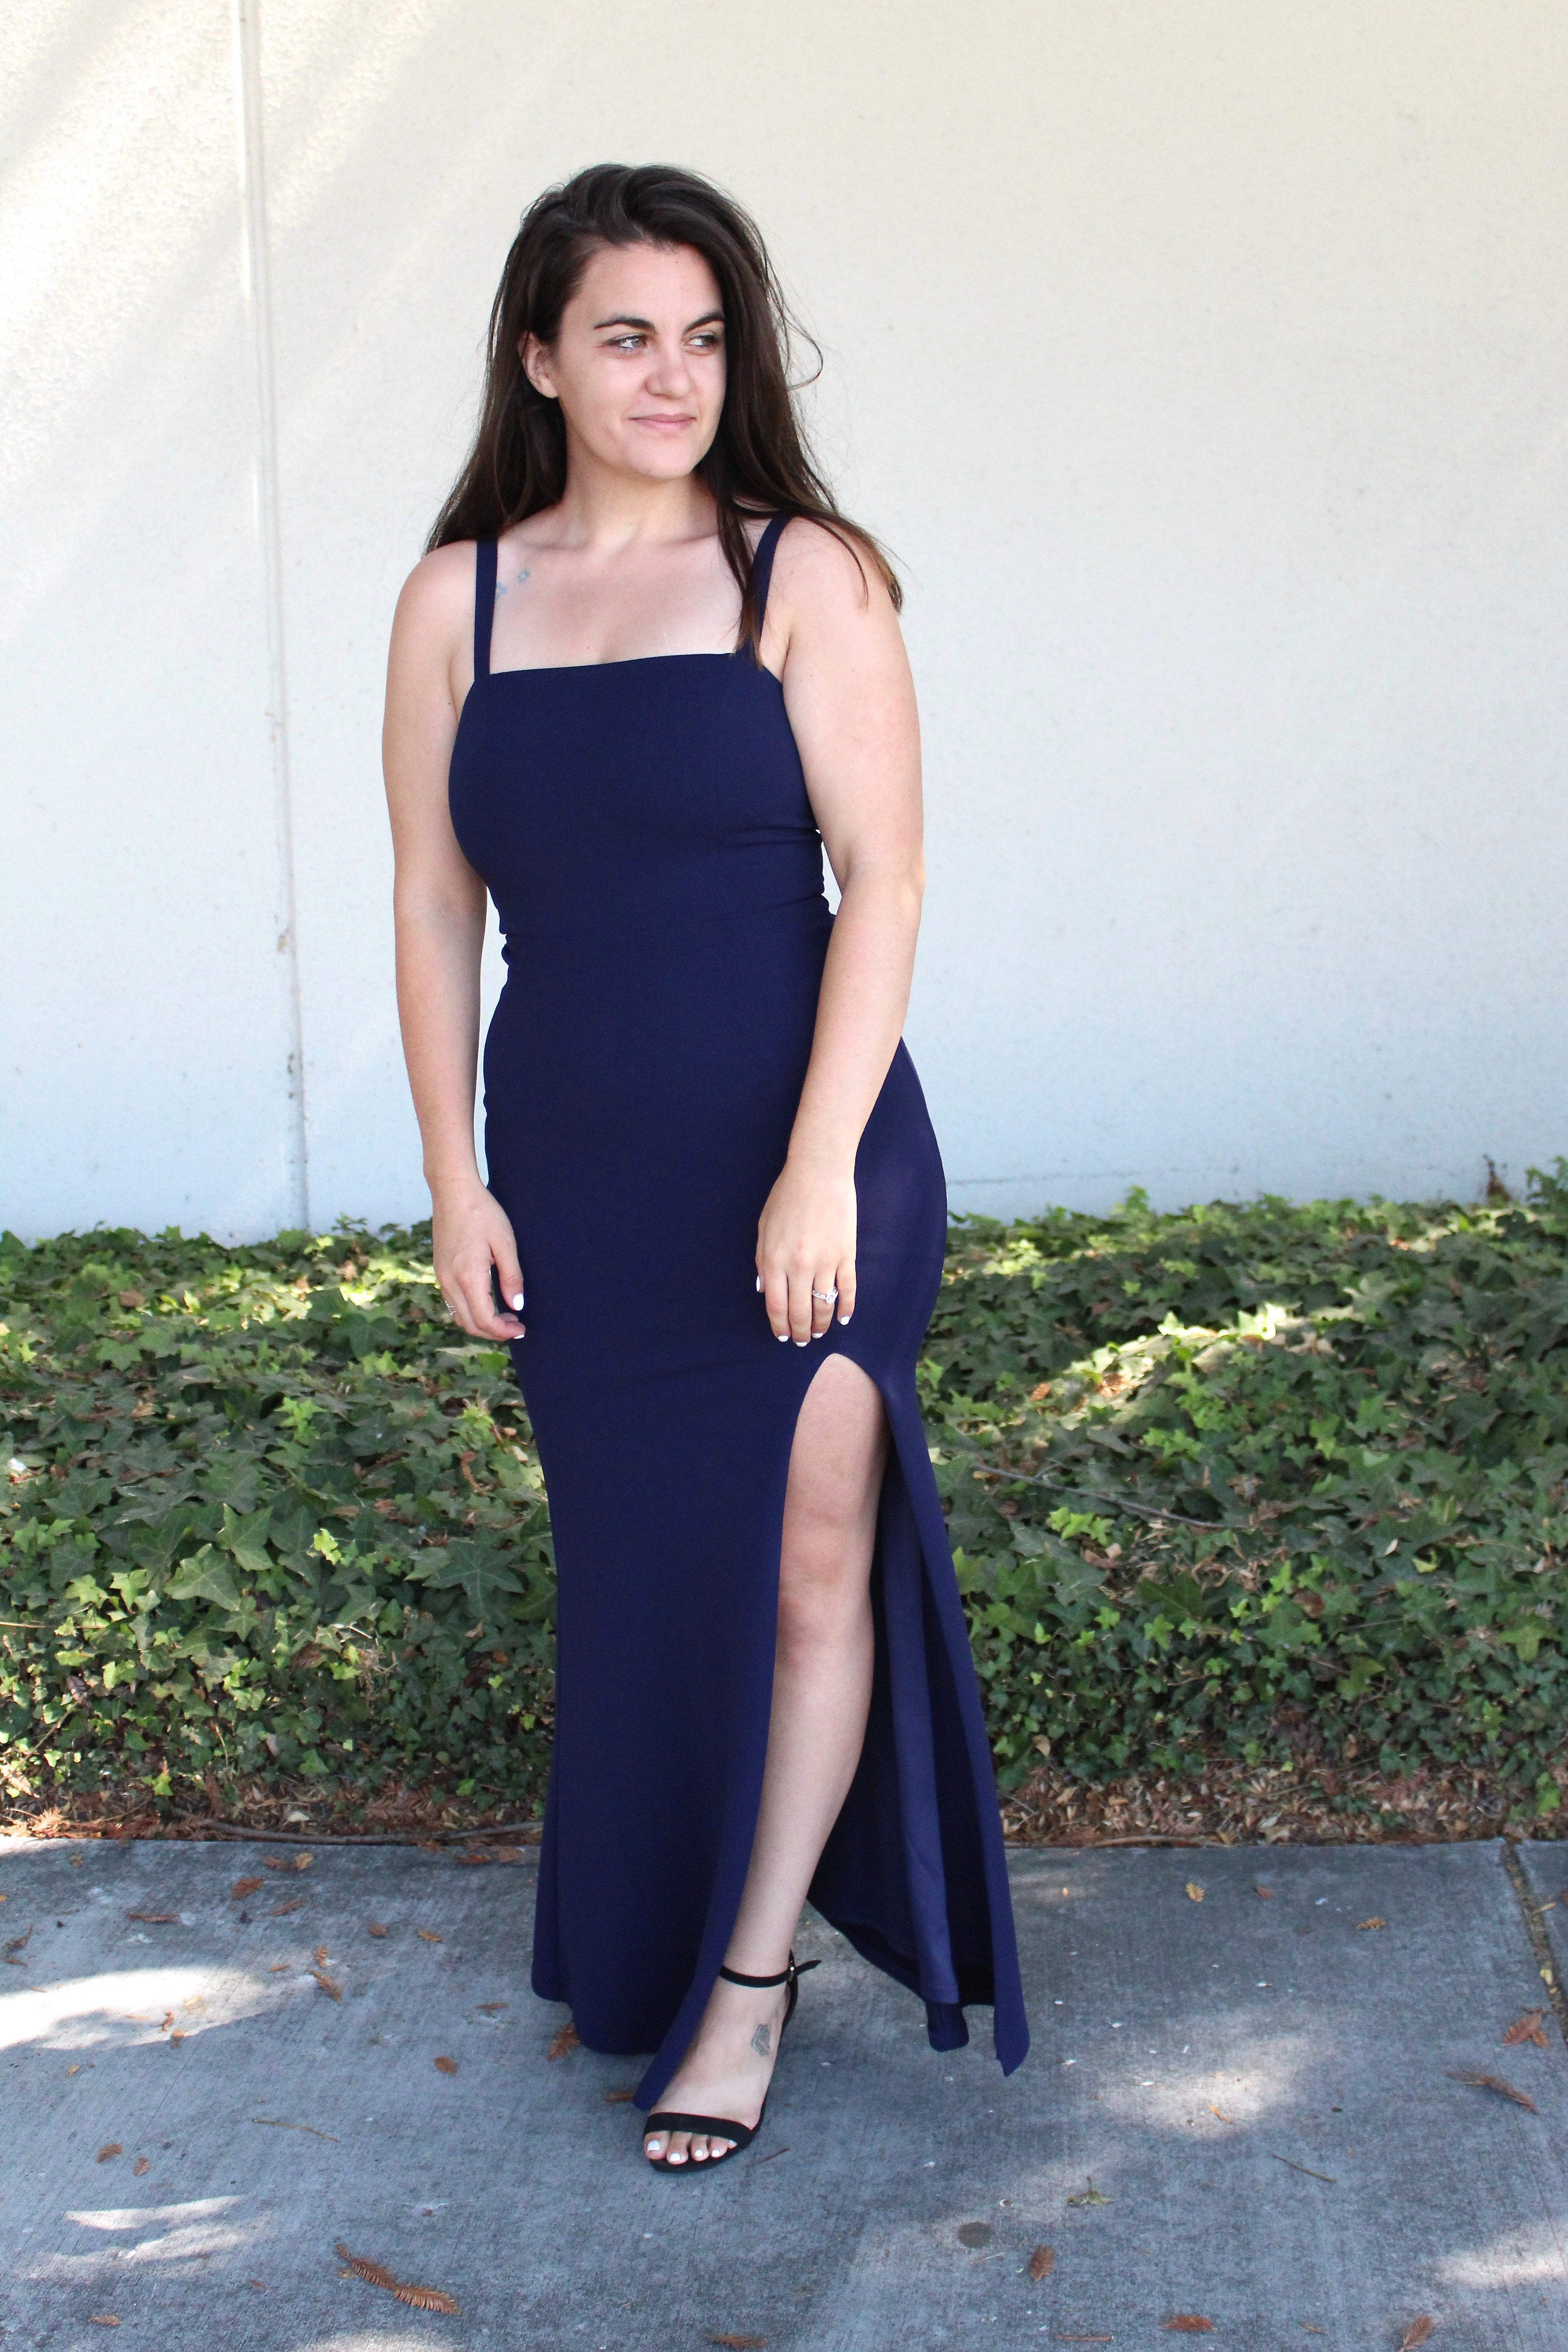 Spcial Occasion Dress- Gala, Prom, Cocktail, Black Tie 3